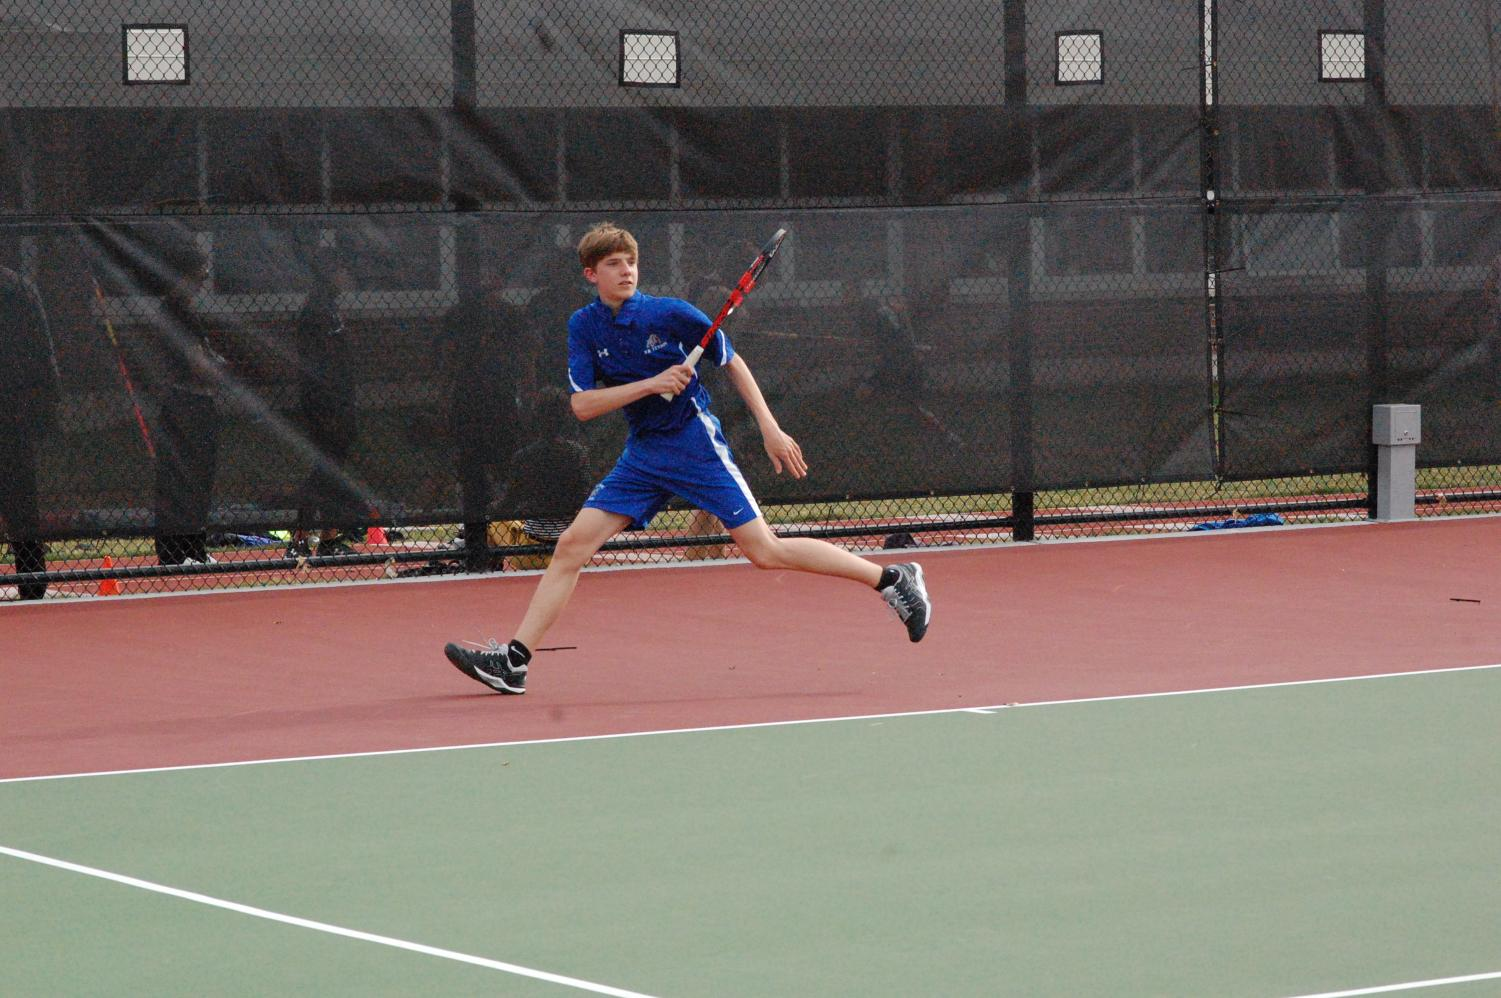 Boys' tennis in action.